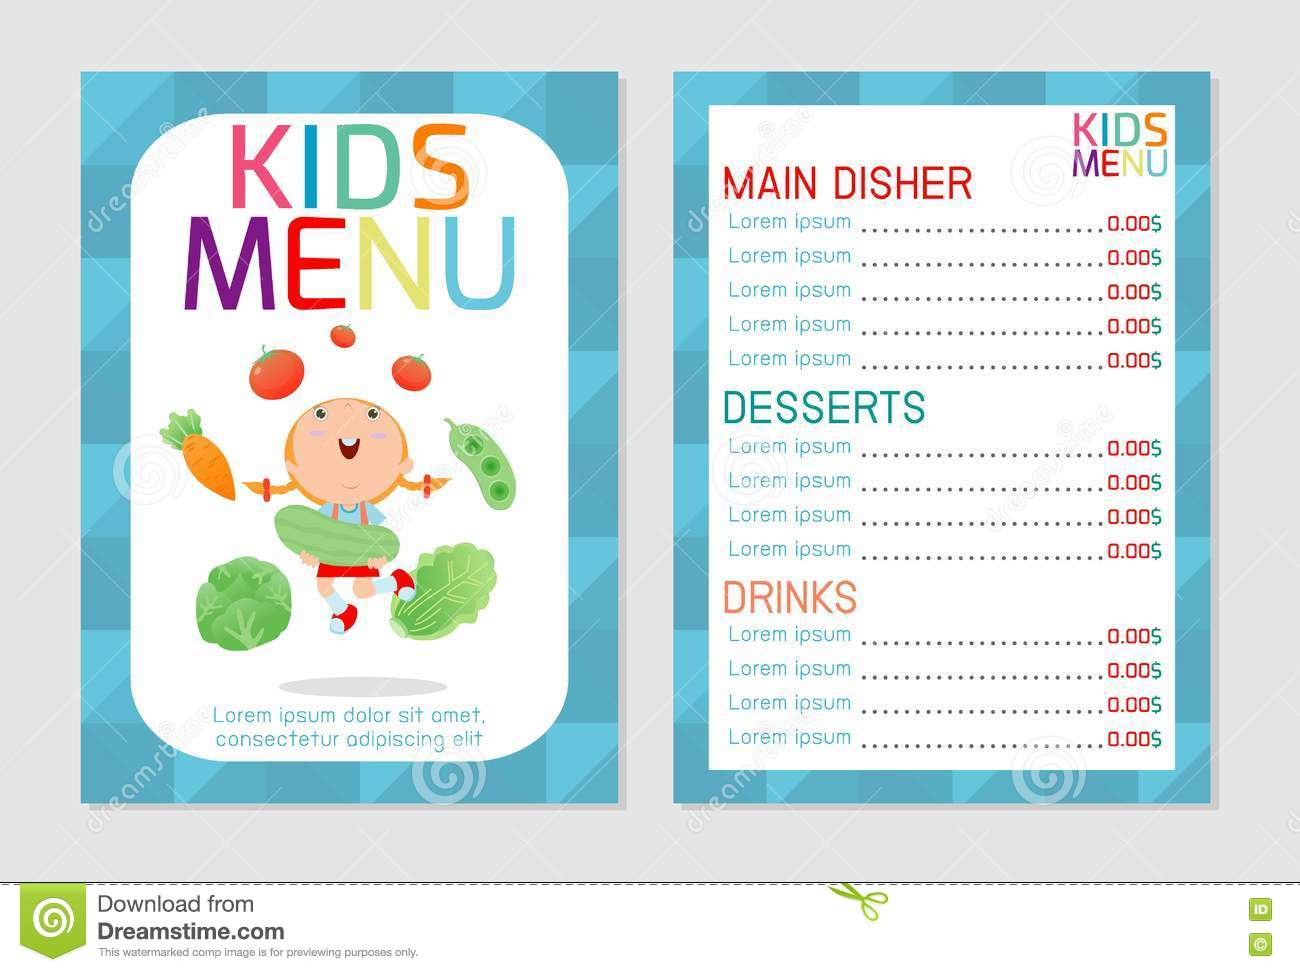 Sublet Agreement Definition Template Examples Cute Colorful Kids Meal Menu  Vector Template Kids Menu Cute Colorful  Menu Templates For Kids